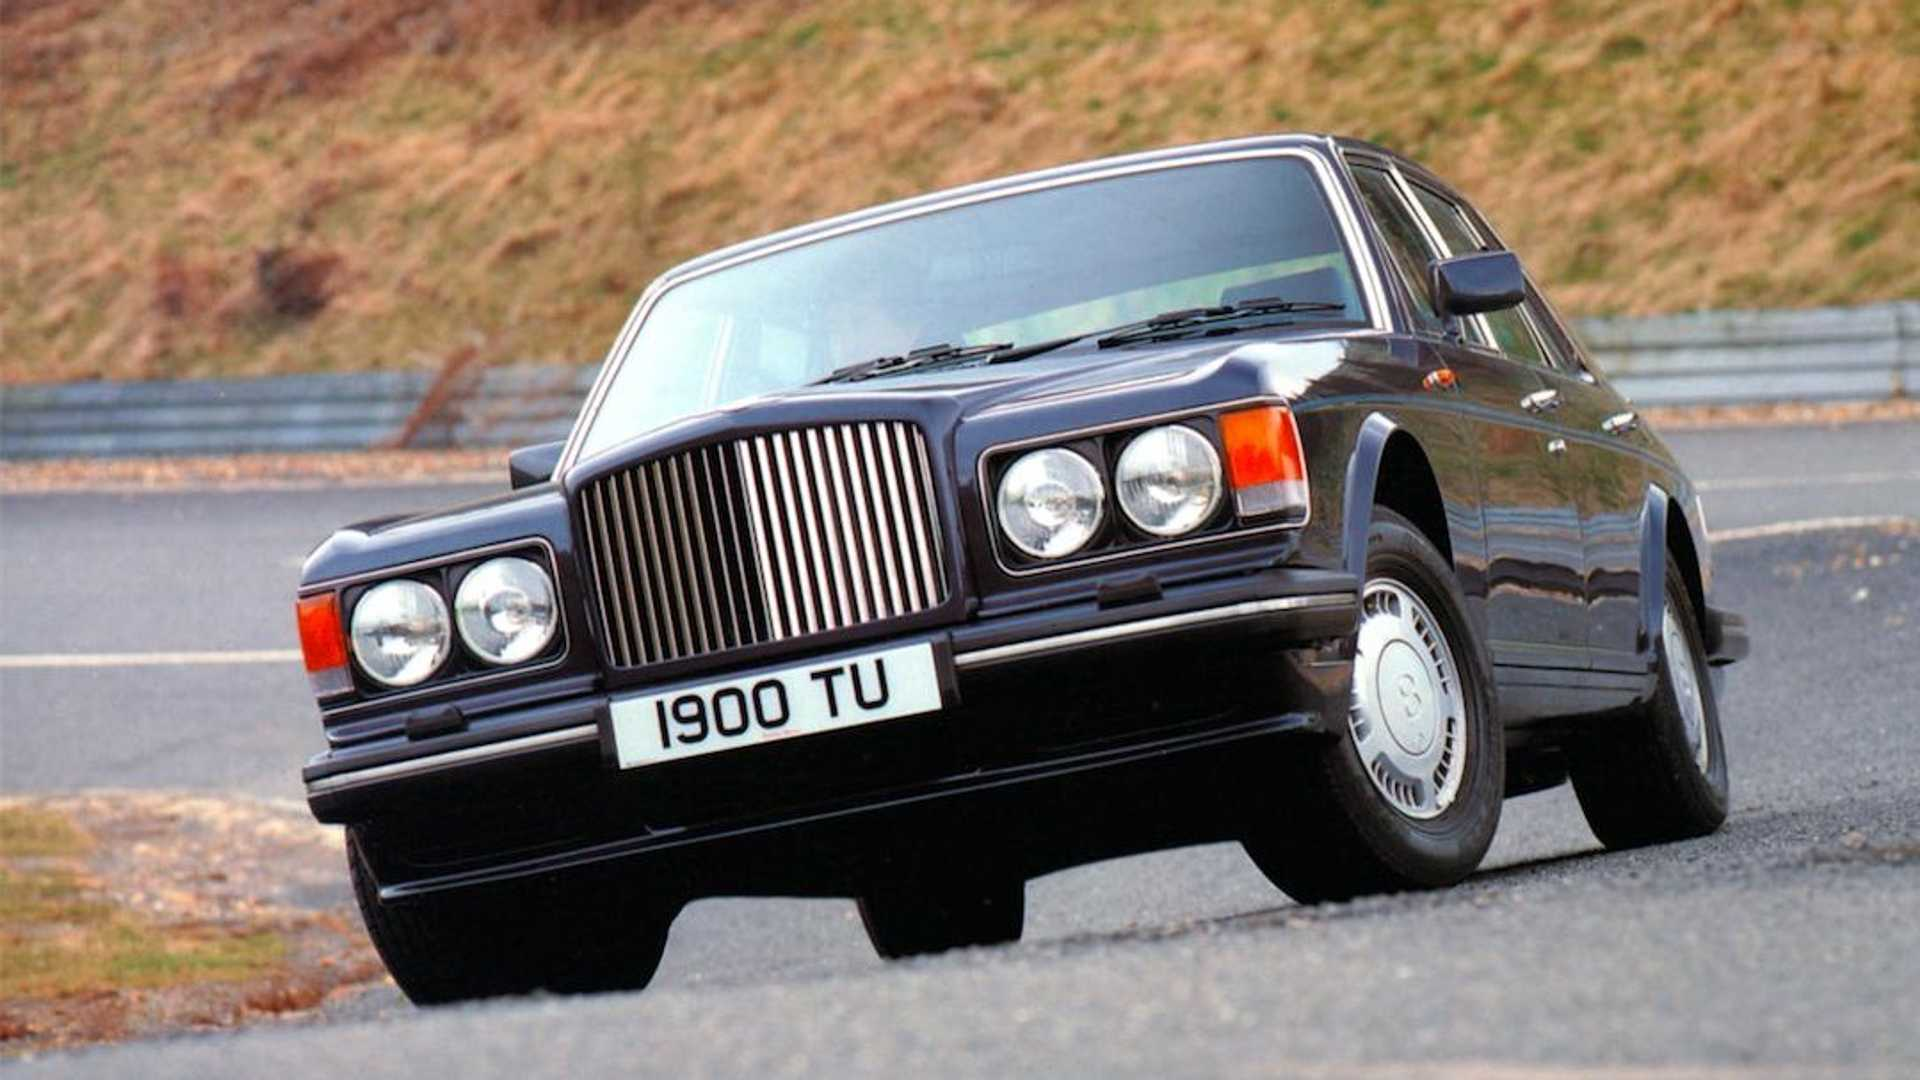 Bentley Turbo R Buying Guide | Motorious